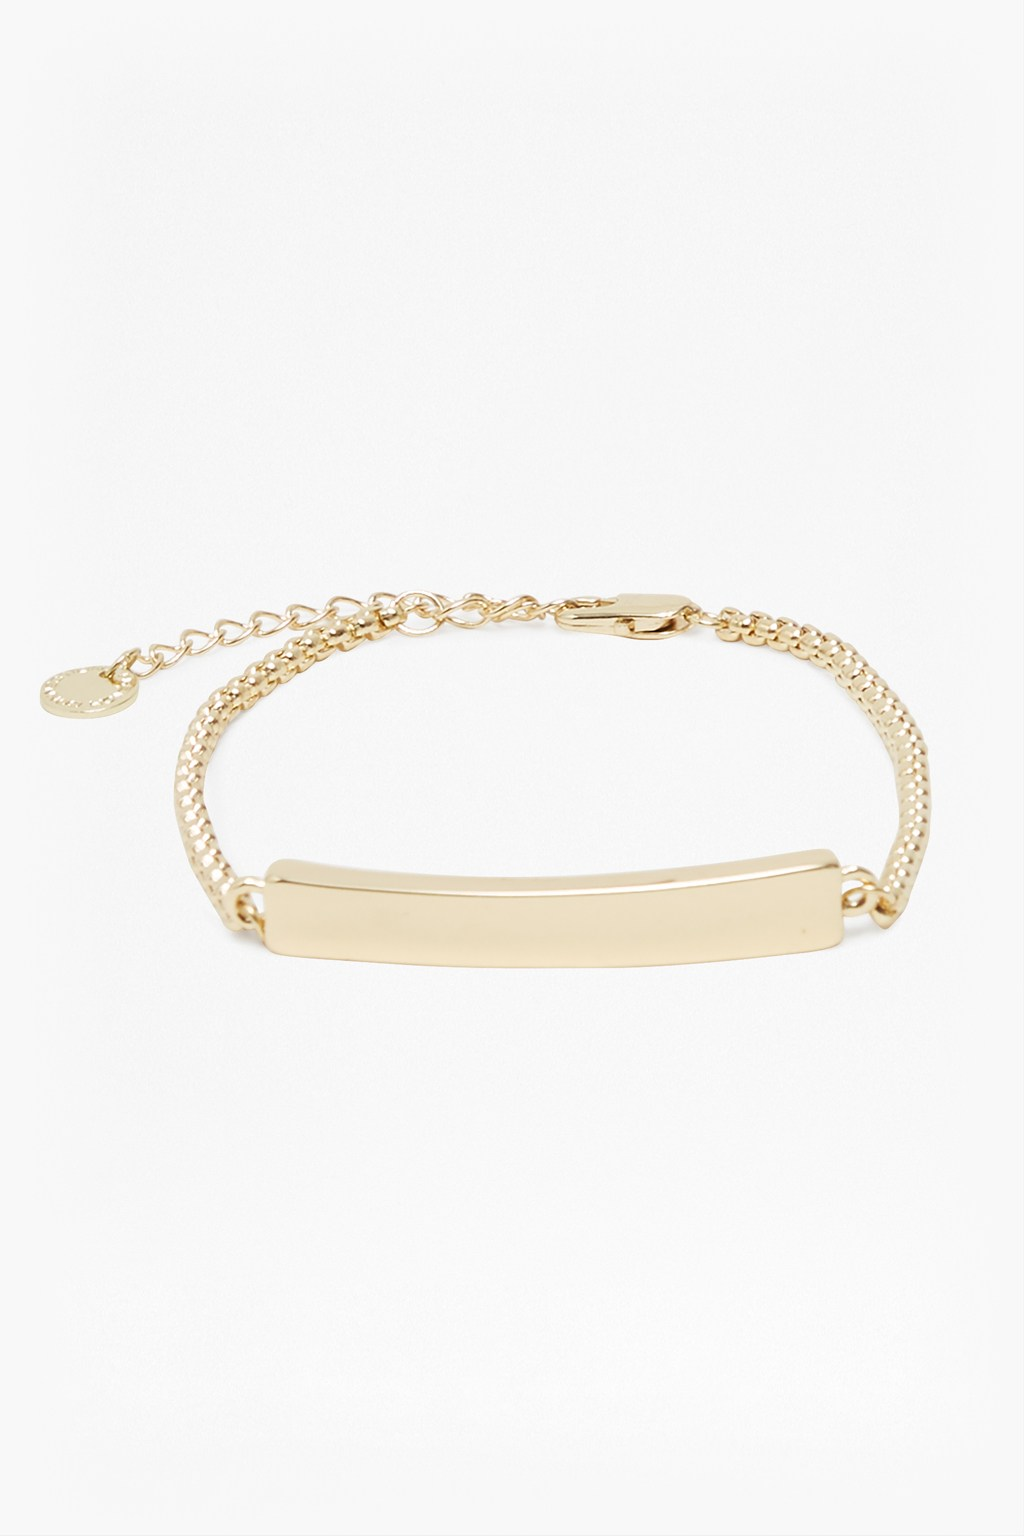 French Connection T-Bar Chain Cuff yH4zq